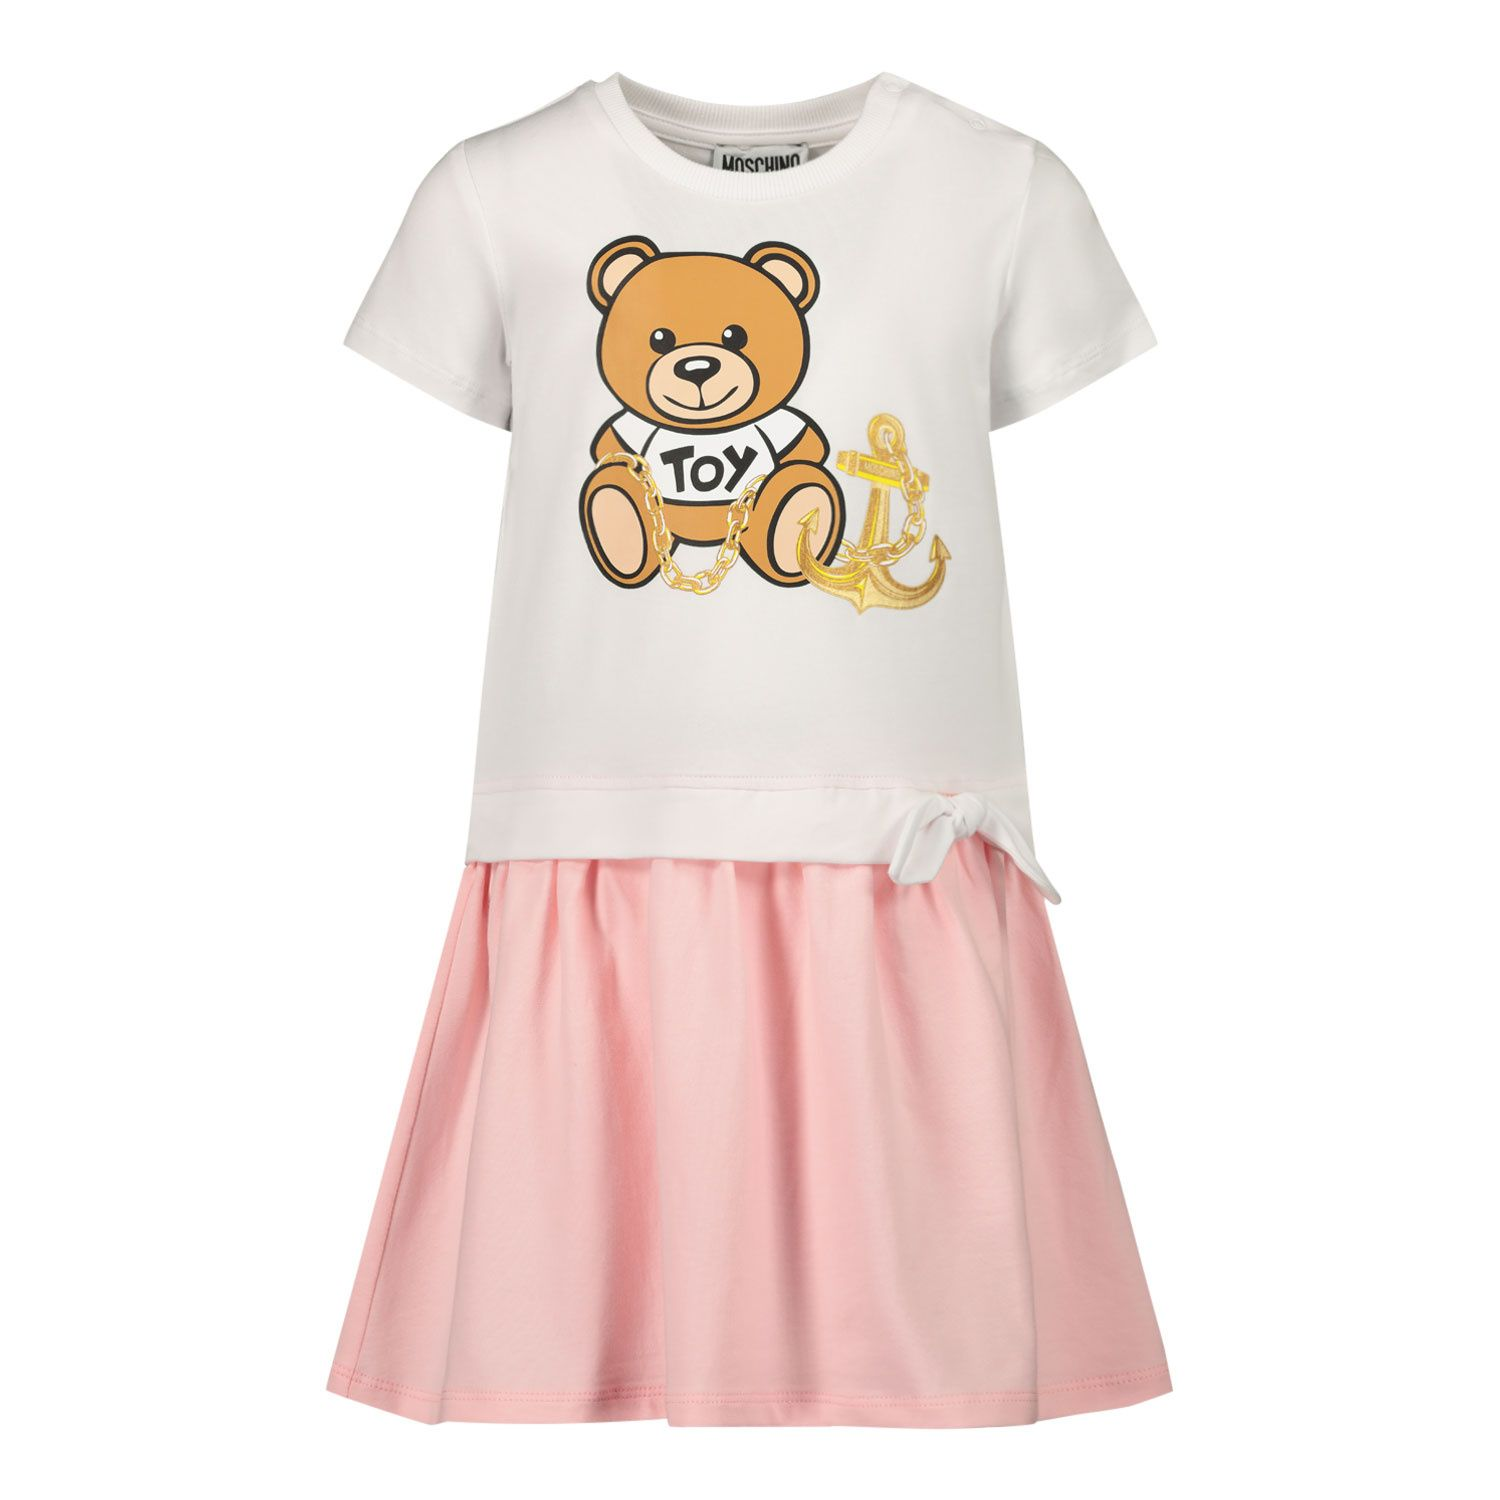 Picture of Moschino MDV08R baby dress light pink